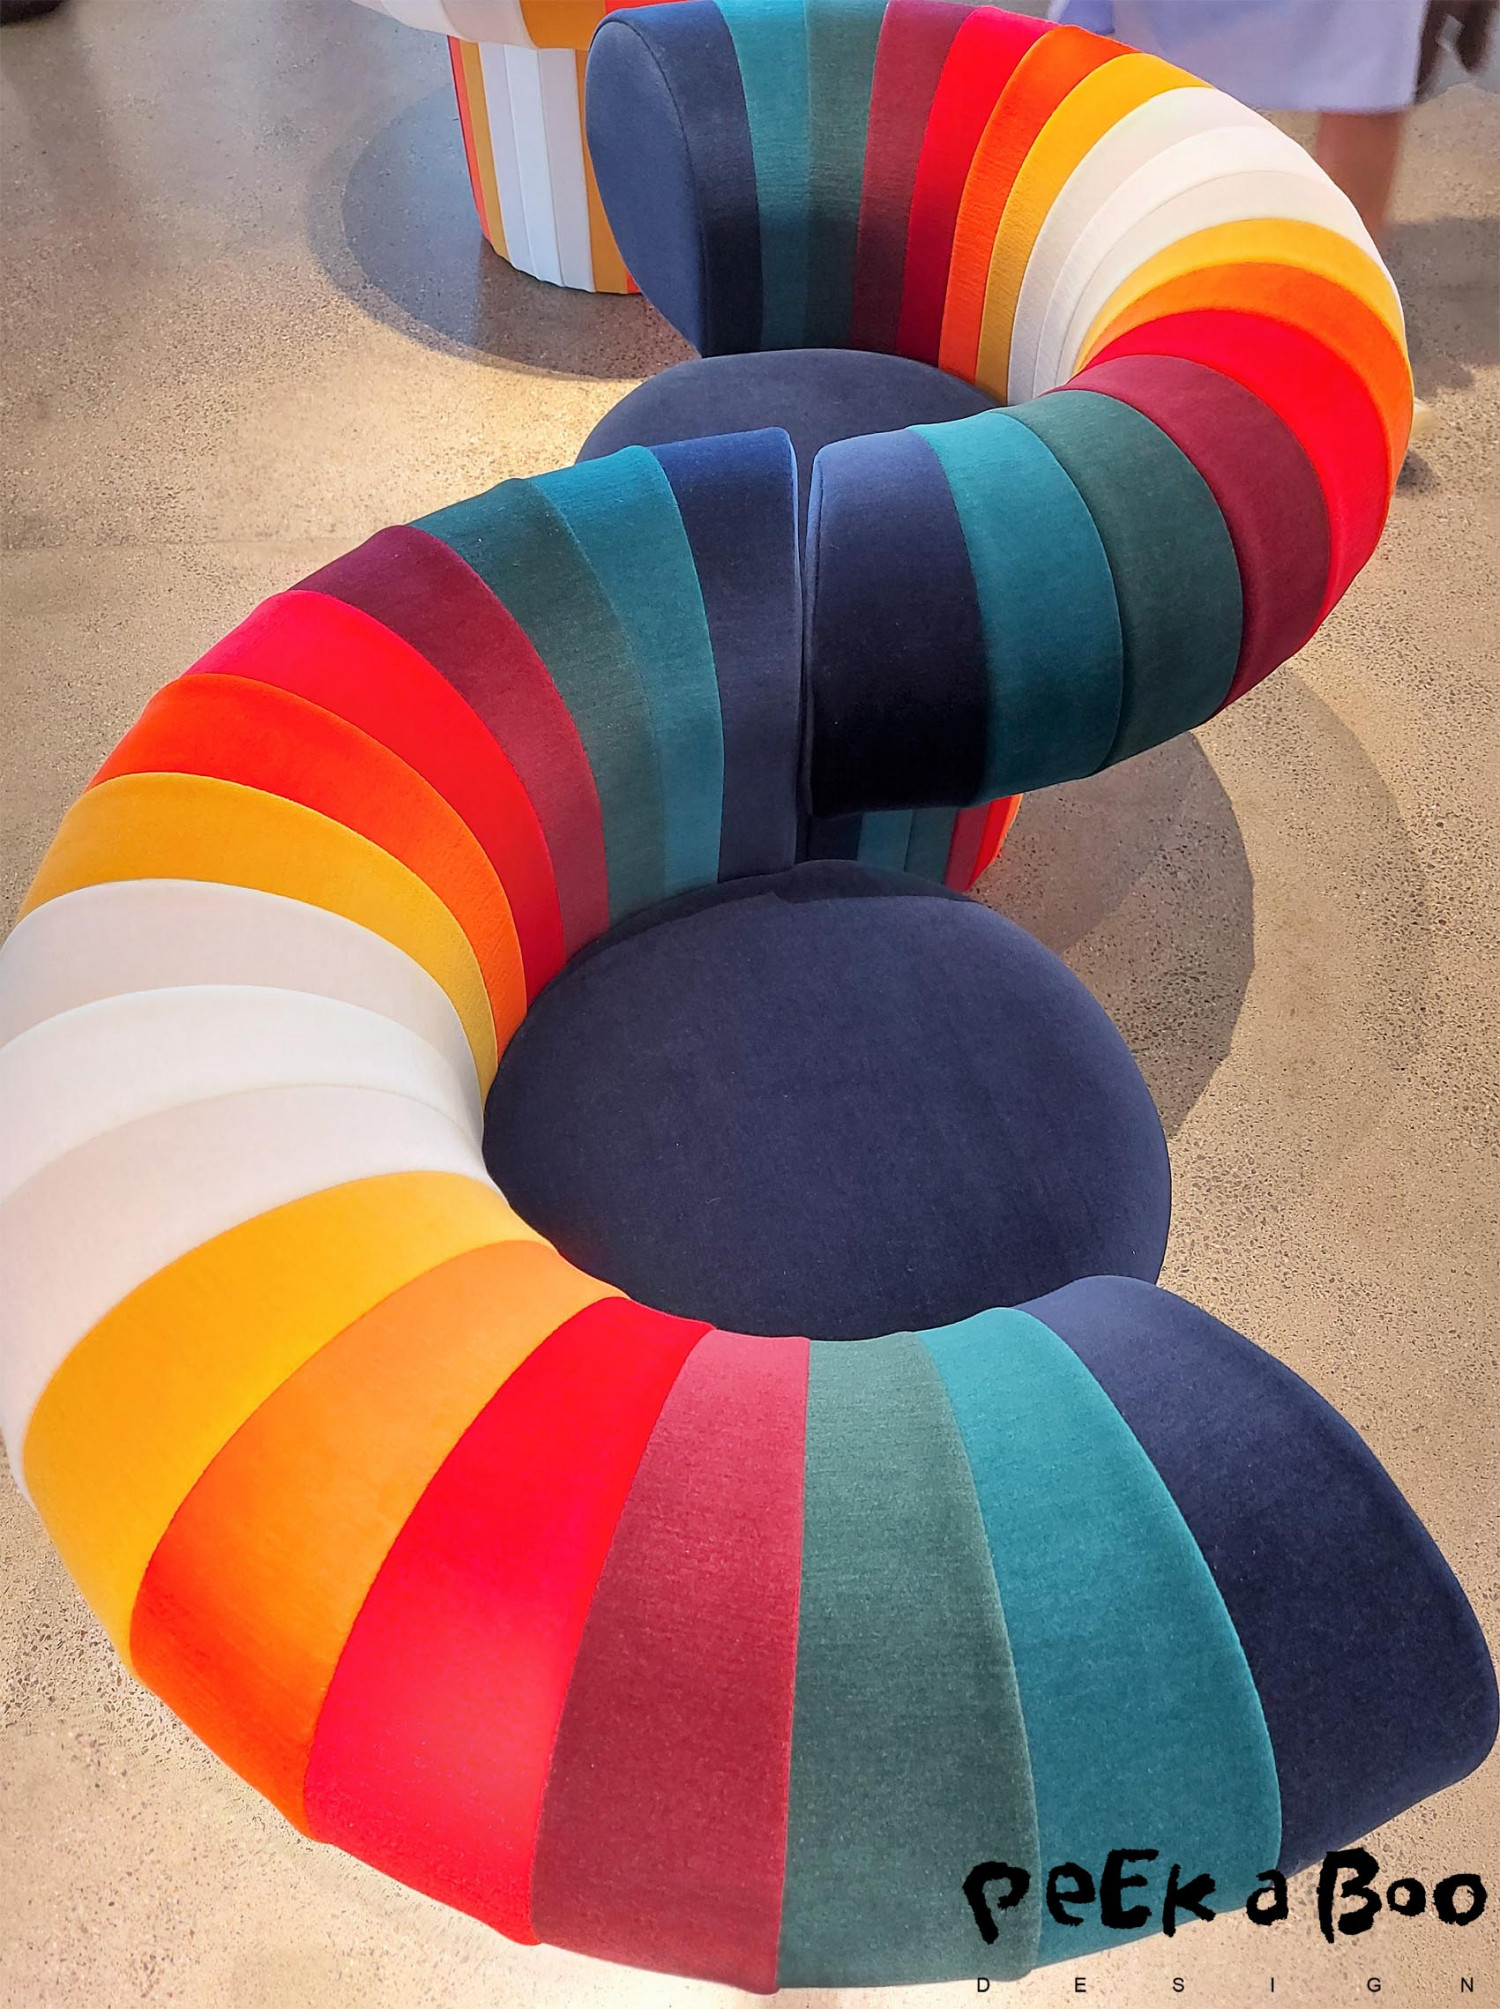 The australian designer adam goodrum module chair in all the colours of the rainbow at the Knit! exhibition at Kvadrat.